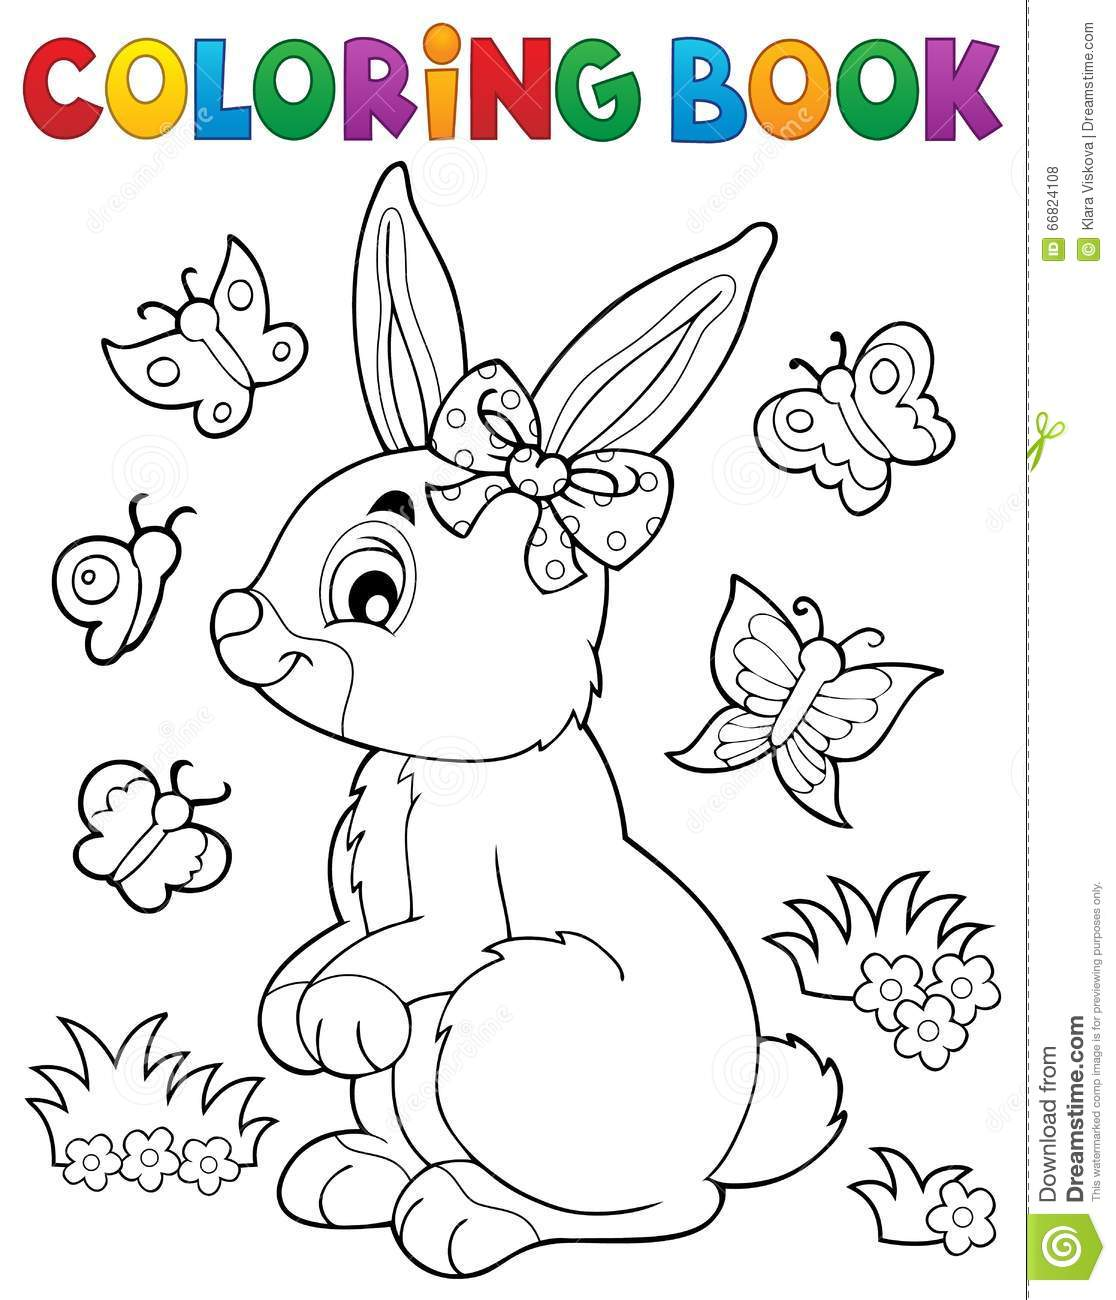 coloring book rabbit pictures : Coloring Book Rabbit Topic 2